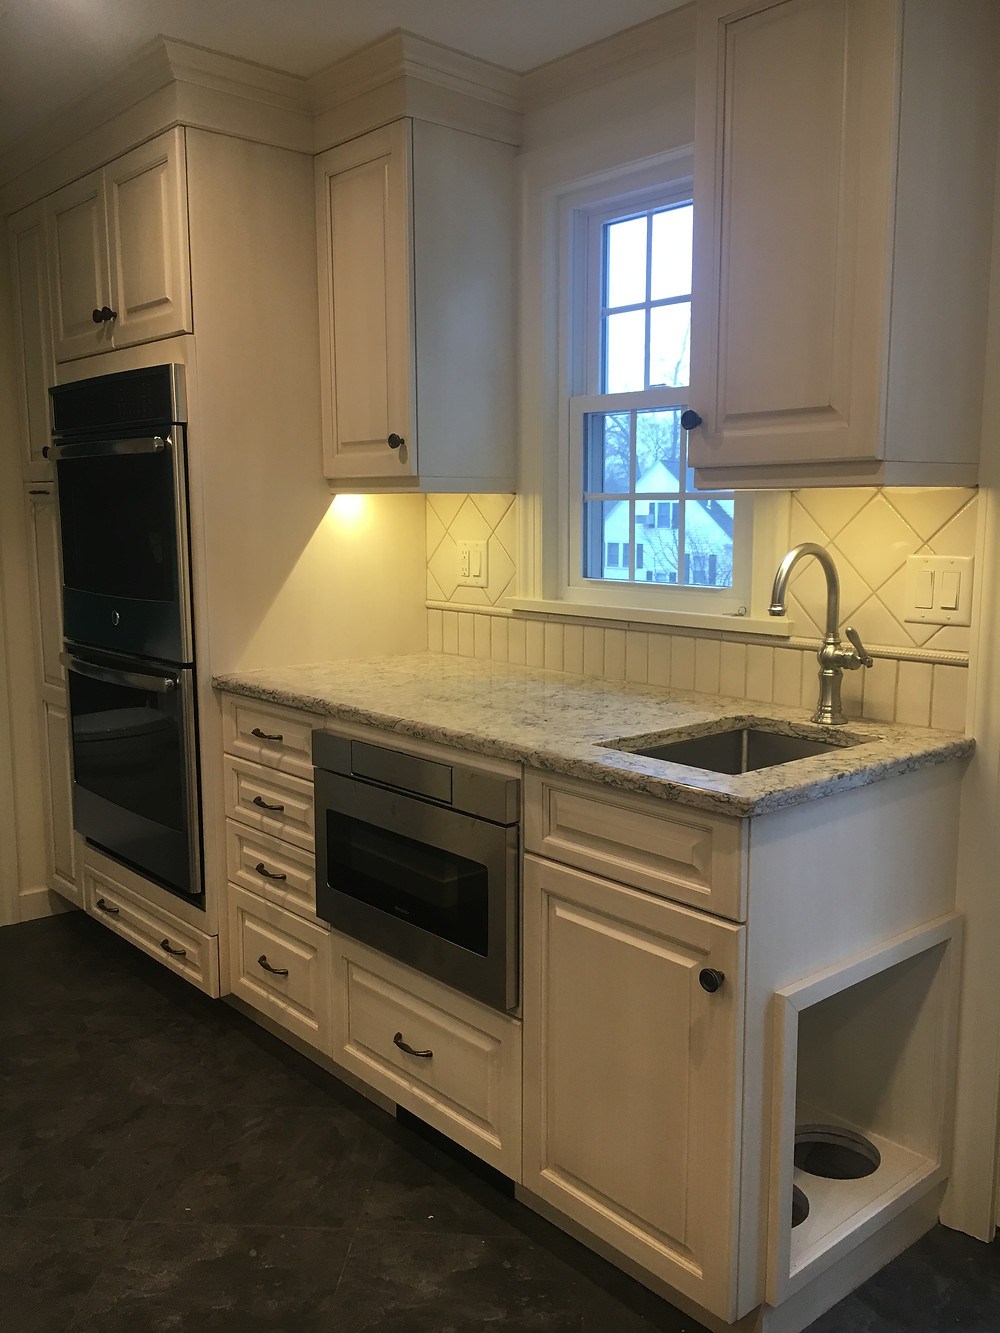 Off white kitchen with prep sink and dog feeding station